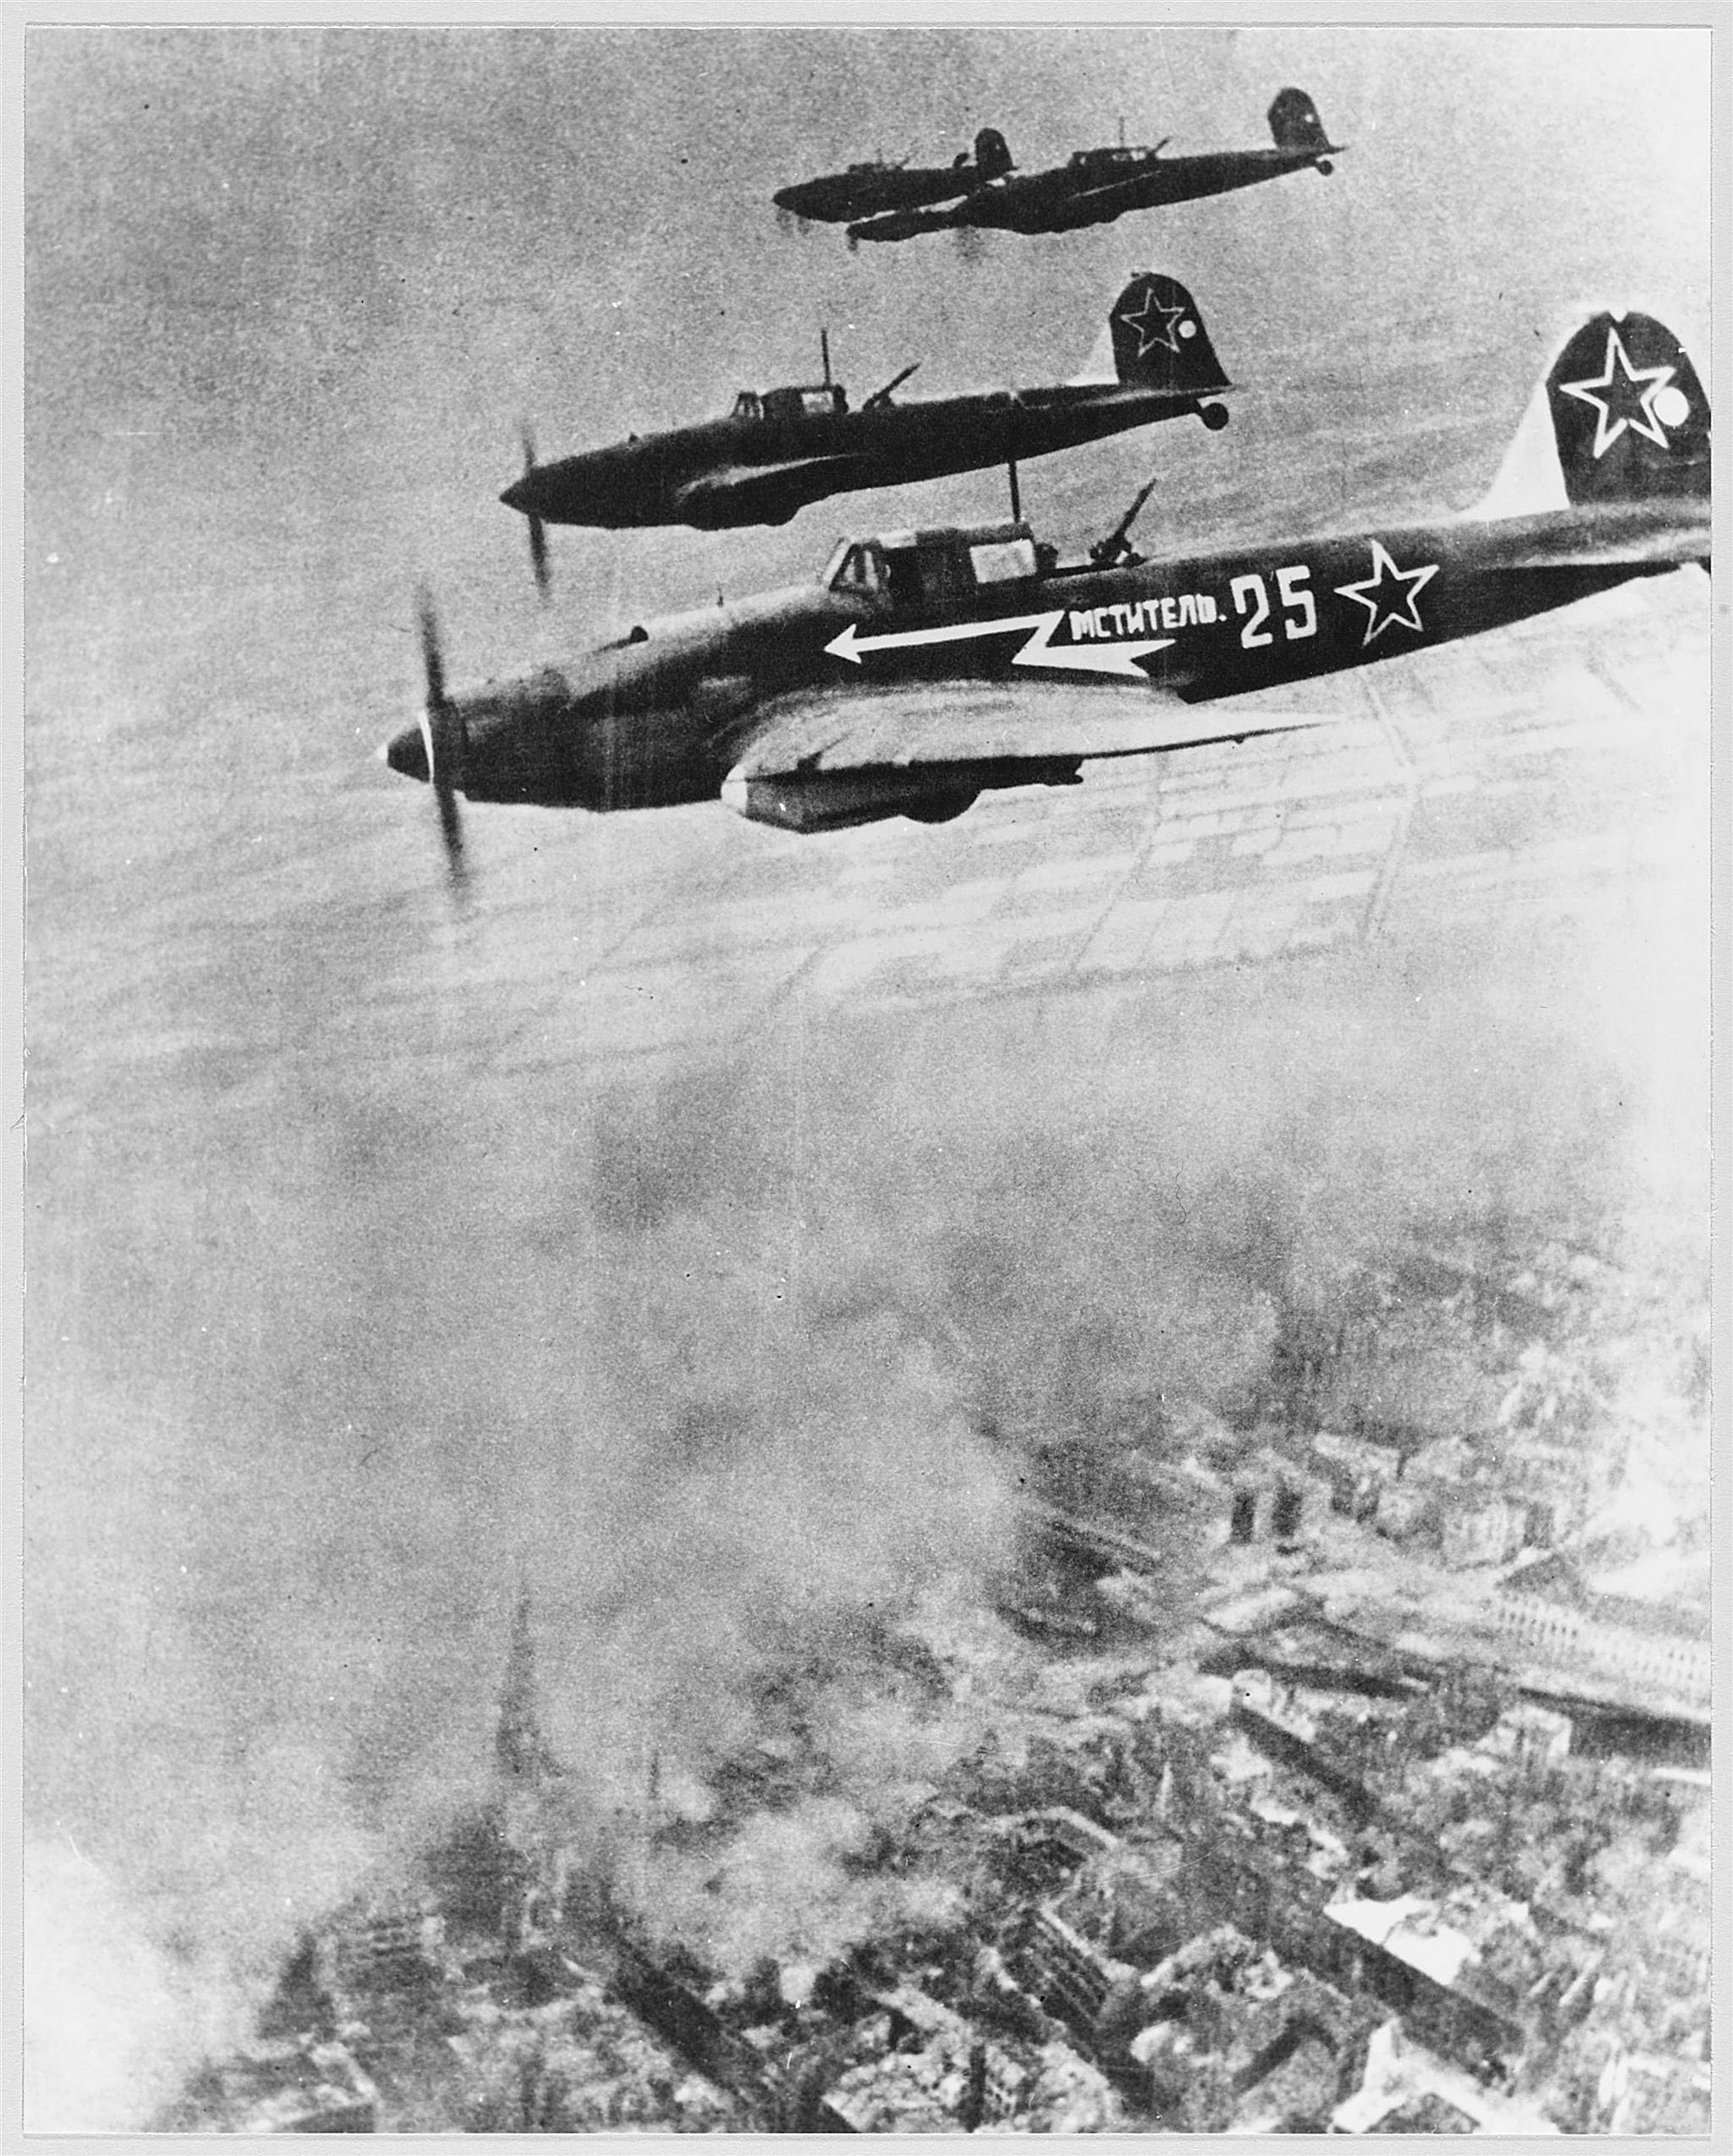 Ilyushin IL-2 aircraft over Berlin. 1945.